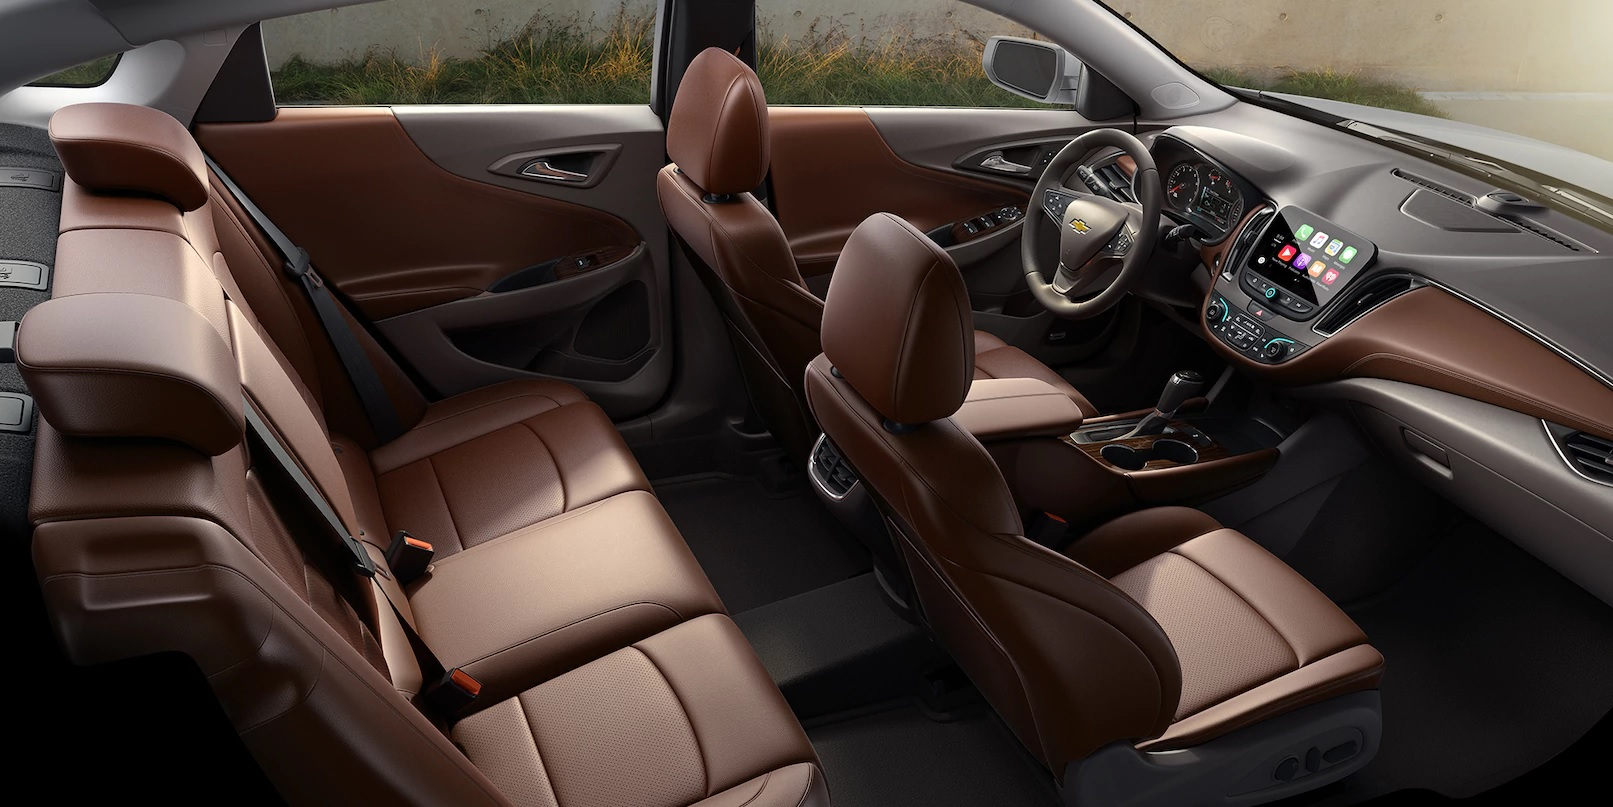 The Refines and Tech Savvy Interior of the Malibu